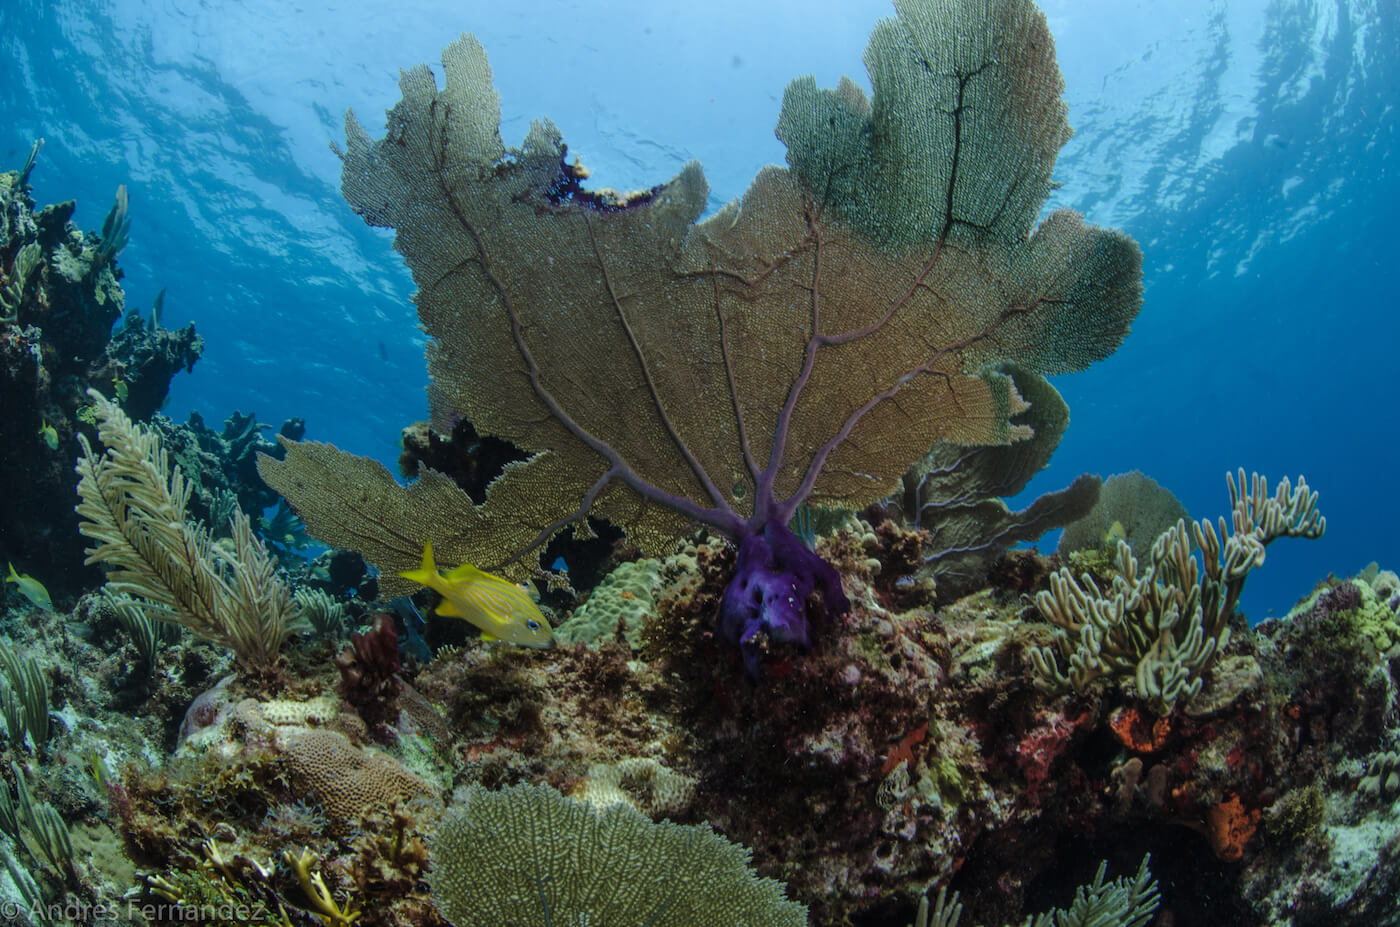 Isla Mujeres Coral Reefs Squalo Adventures Scuba Diving Snorkeling-15